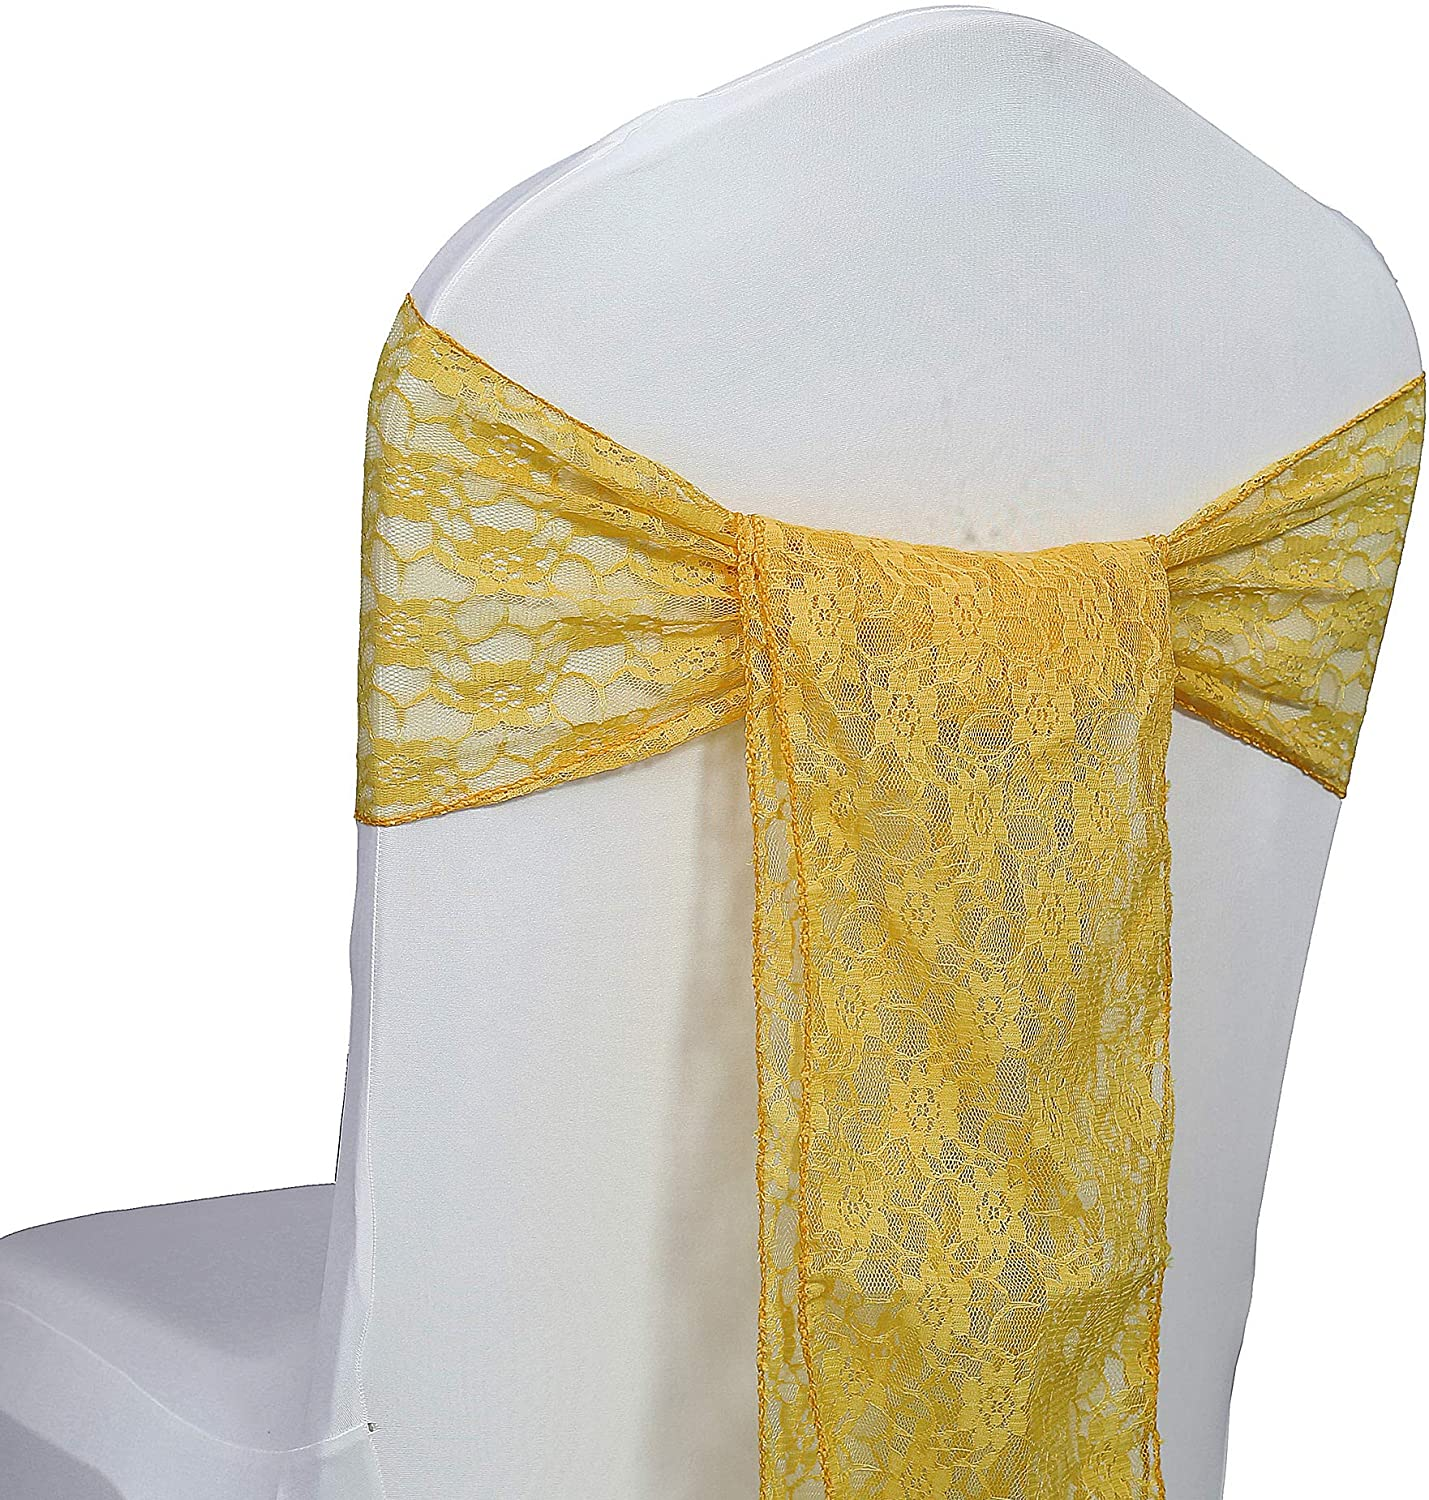 mds Pack of 10 Lace Chair Bow Sashes sash for Wedding or Events Party Supplies Chair lace sash - Gold